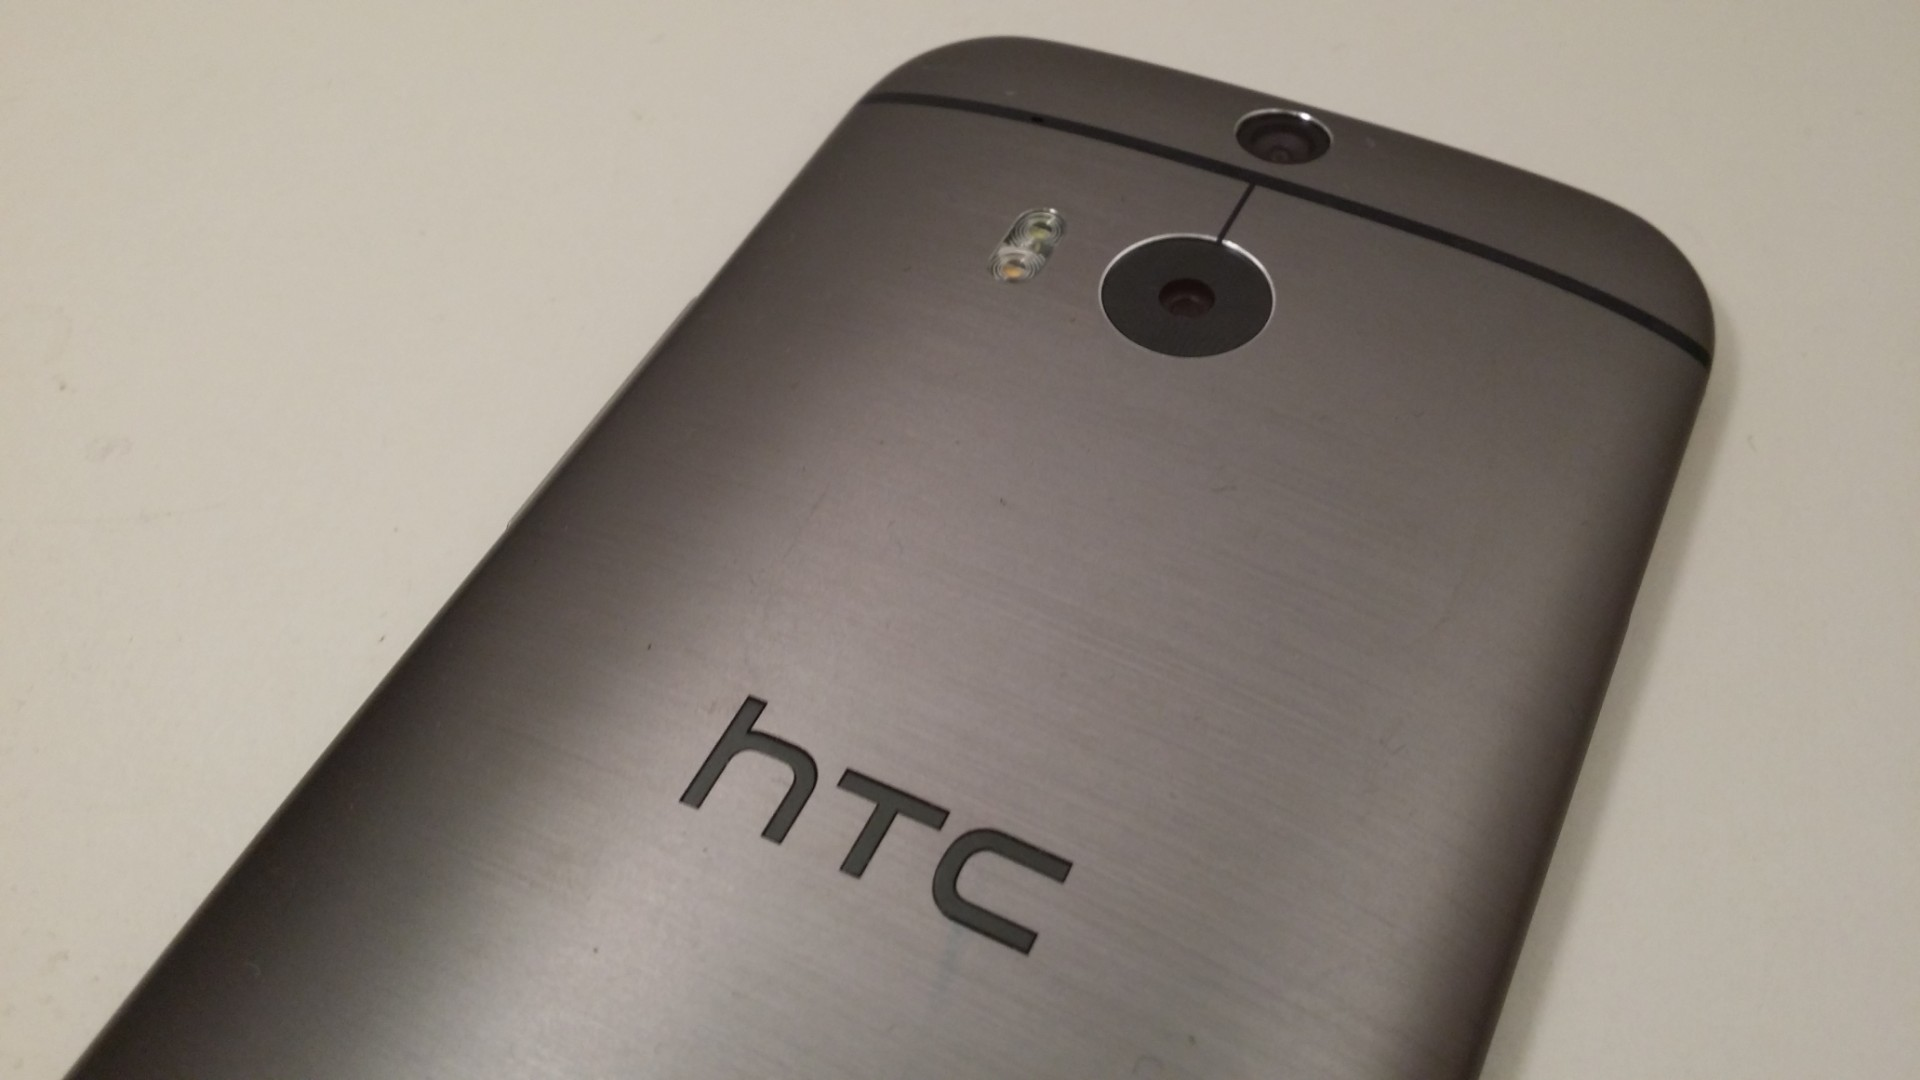 Hands On Review of the HTC One (M8): Simply the Best